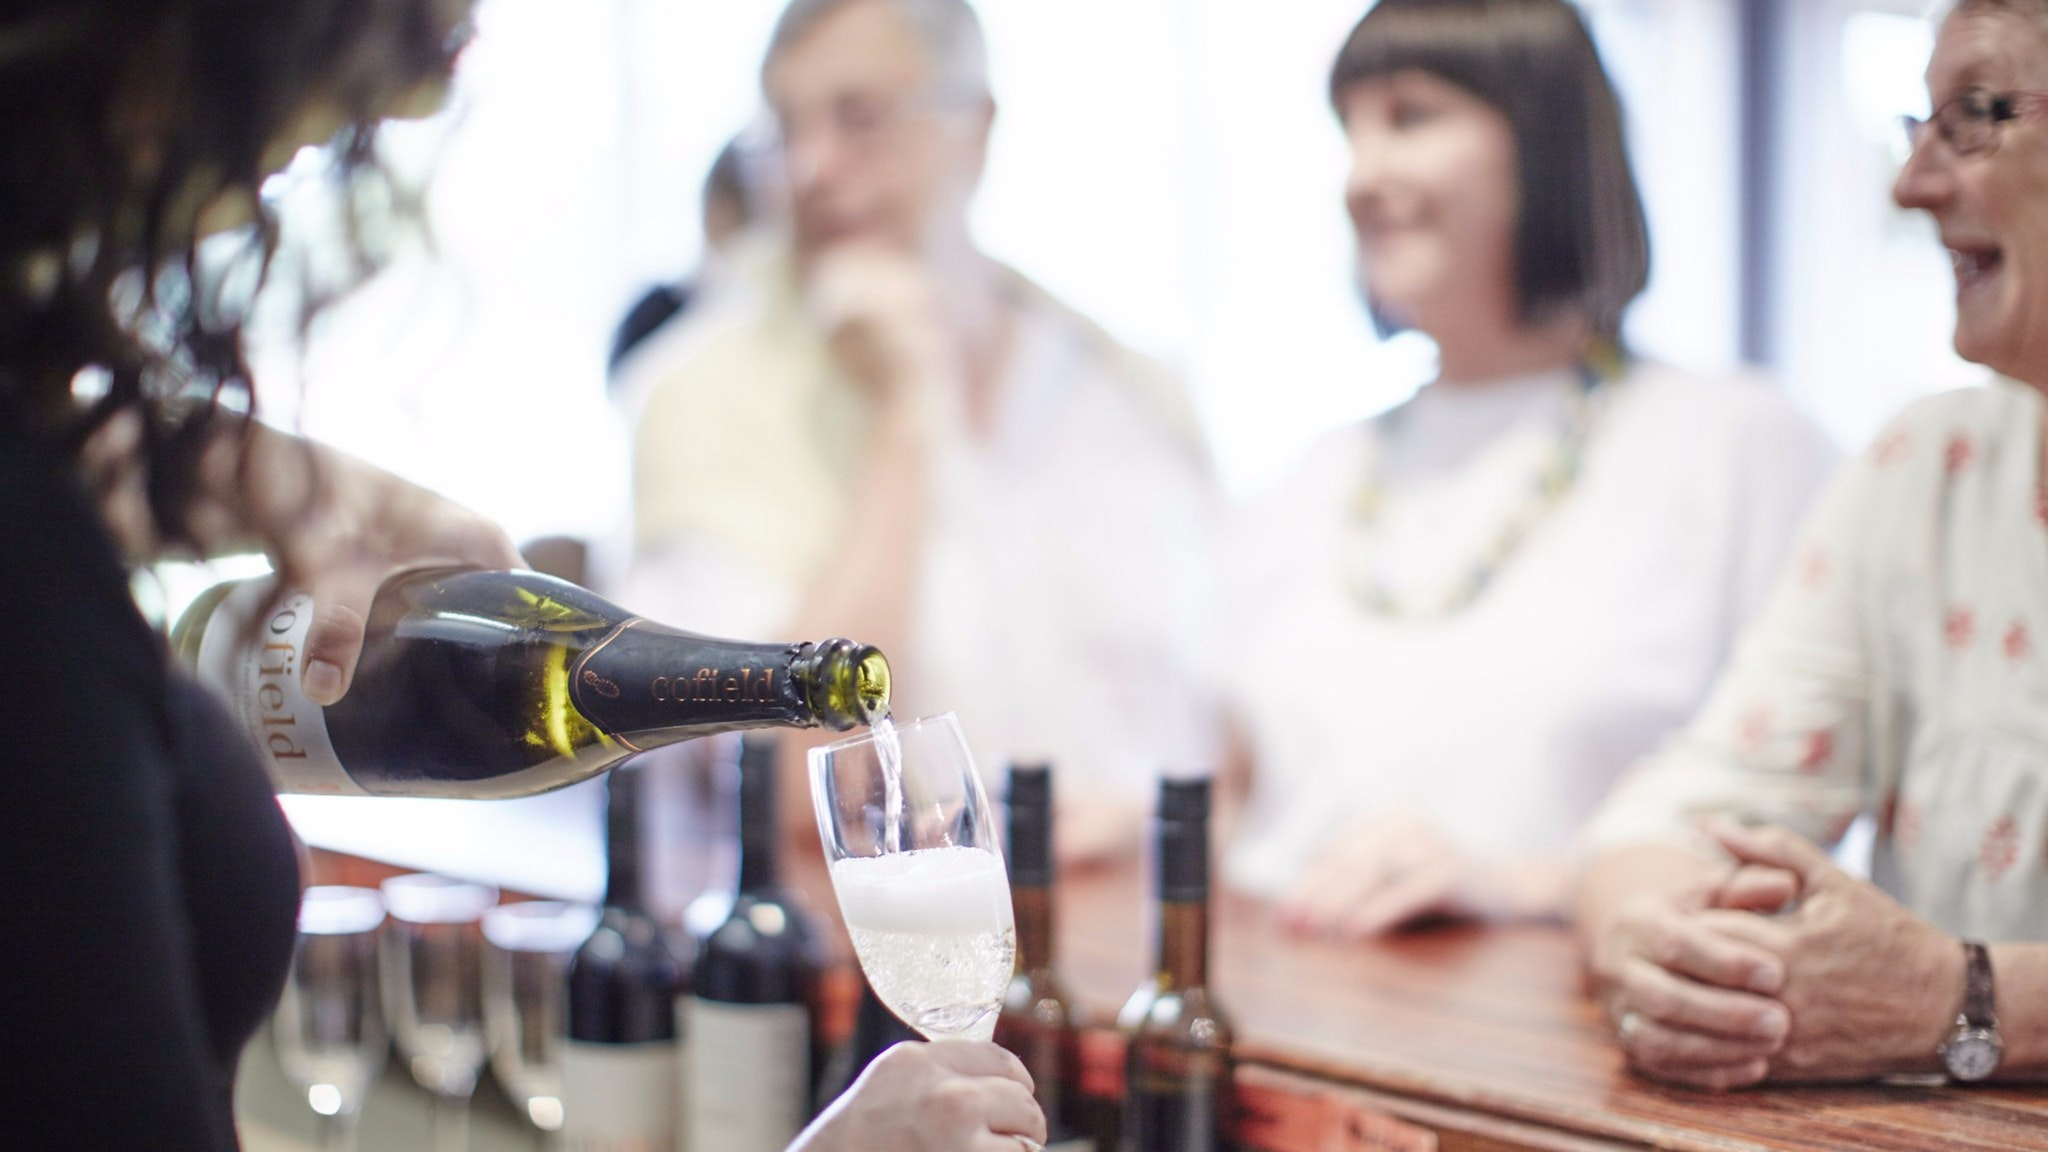 Staff serving Cofield Sparkling White wine to customers at Cellar Door